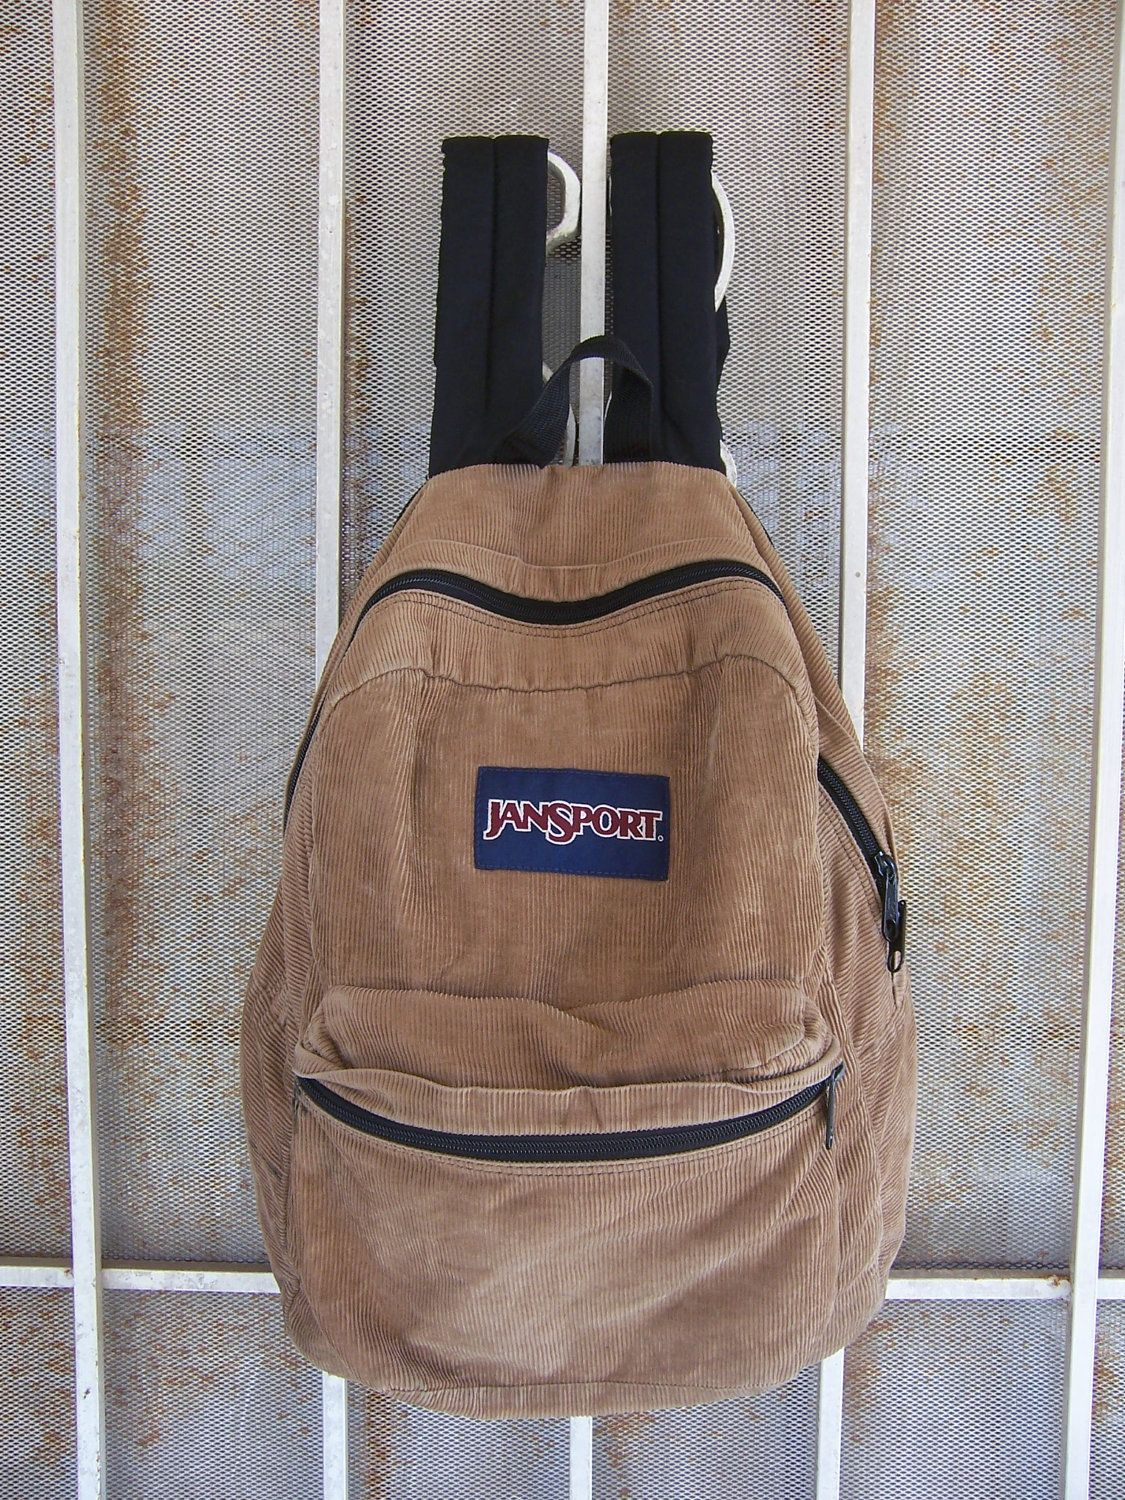 LIGHT BROWN CORDUROY JANSPORT BACKPACK on The Hunt  4b6c09365f5c2